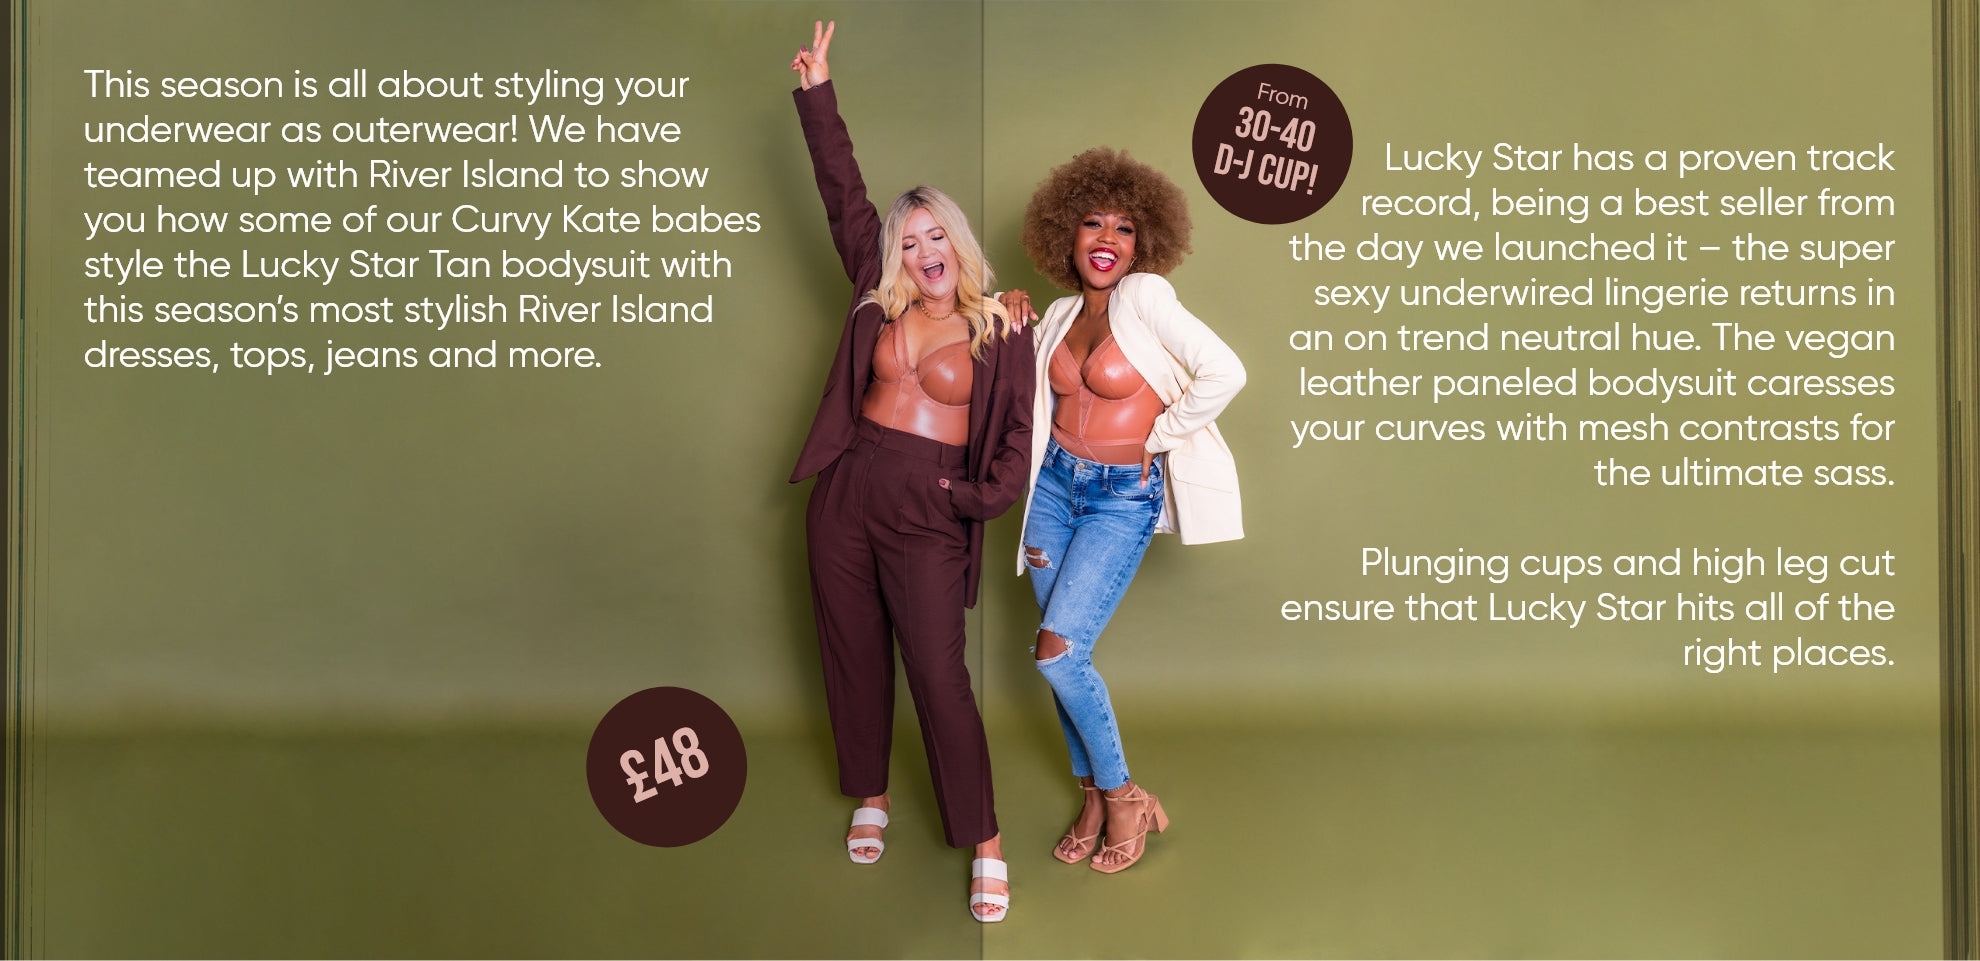 From 30-40 D-J cup, £48! This season is all about styling your underwear as outerwear!